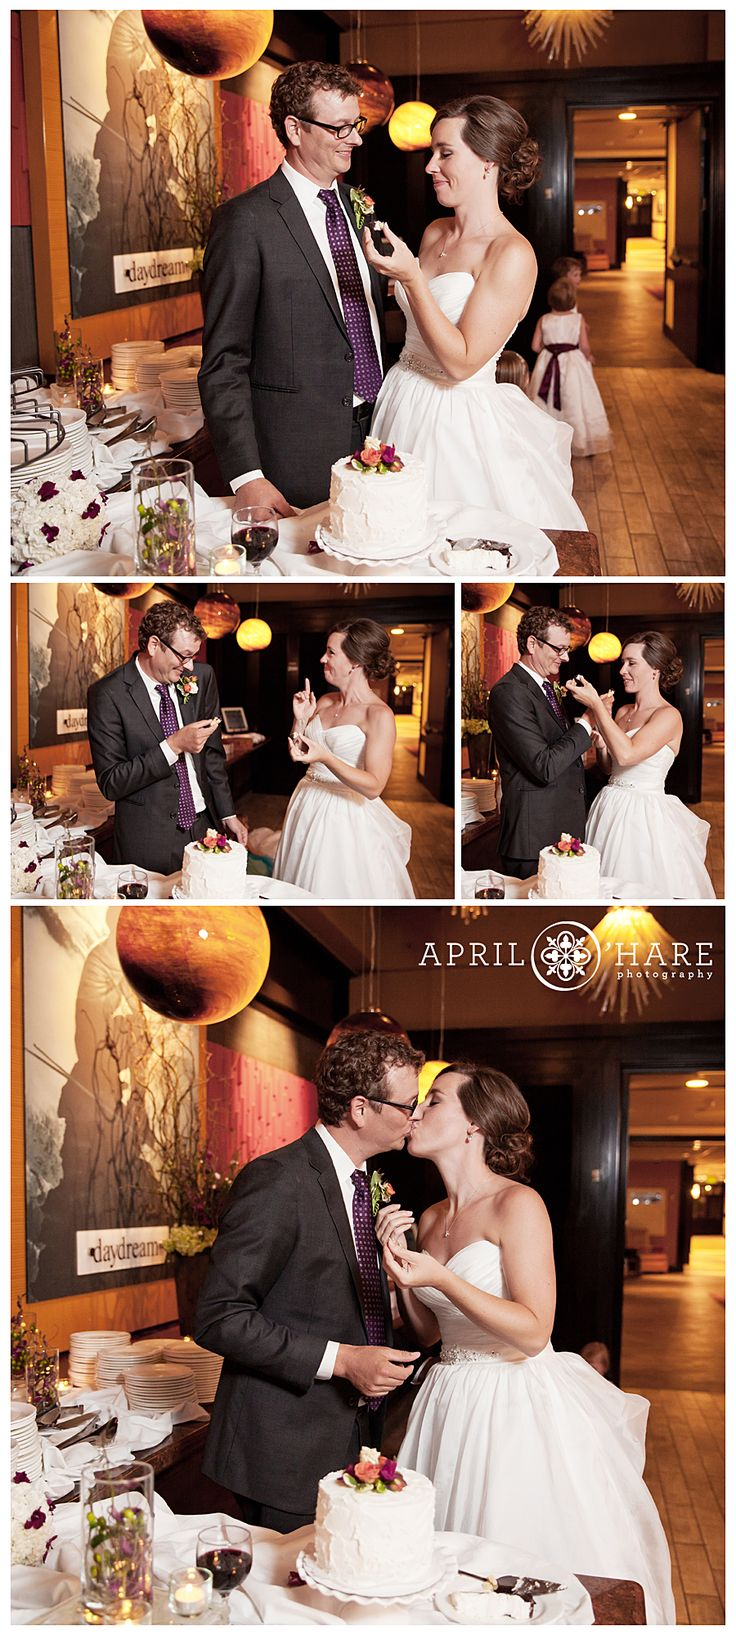 Cake Cutting at Steamboat Springs Colorado Wedding Reception at Sevens Restaurant at Sheraton Hotel. - April O'Hare Photography http://www.apriloharephotography.com